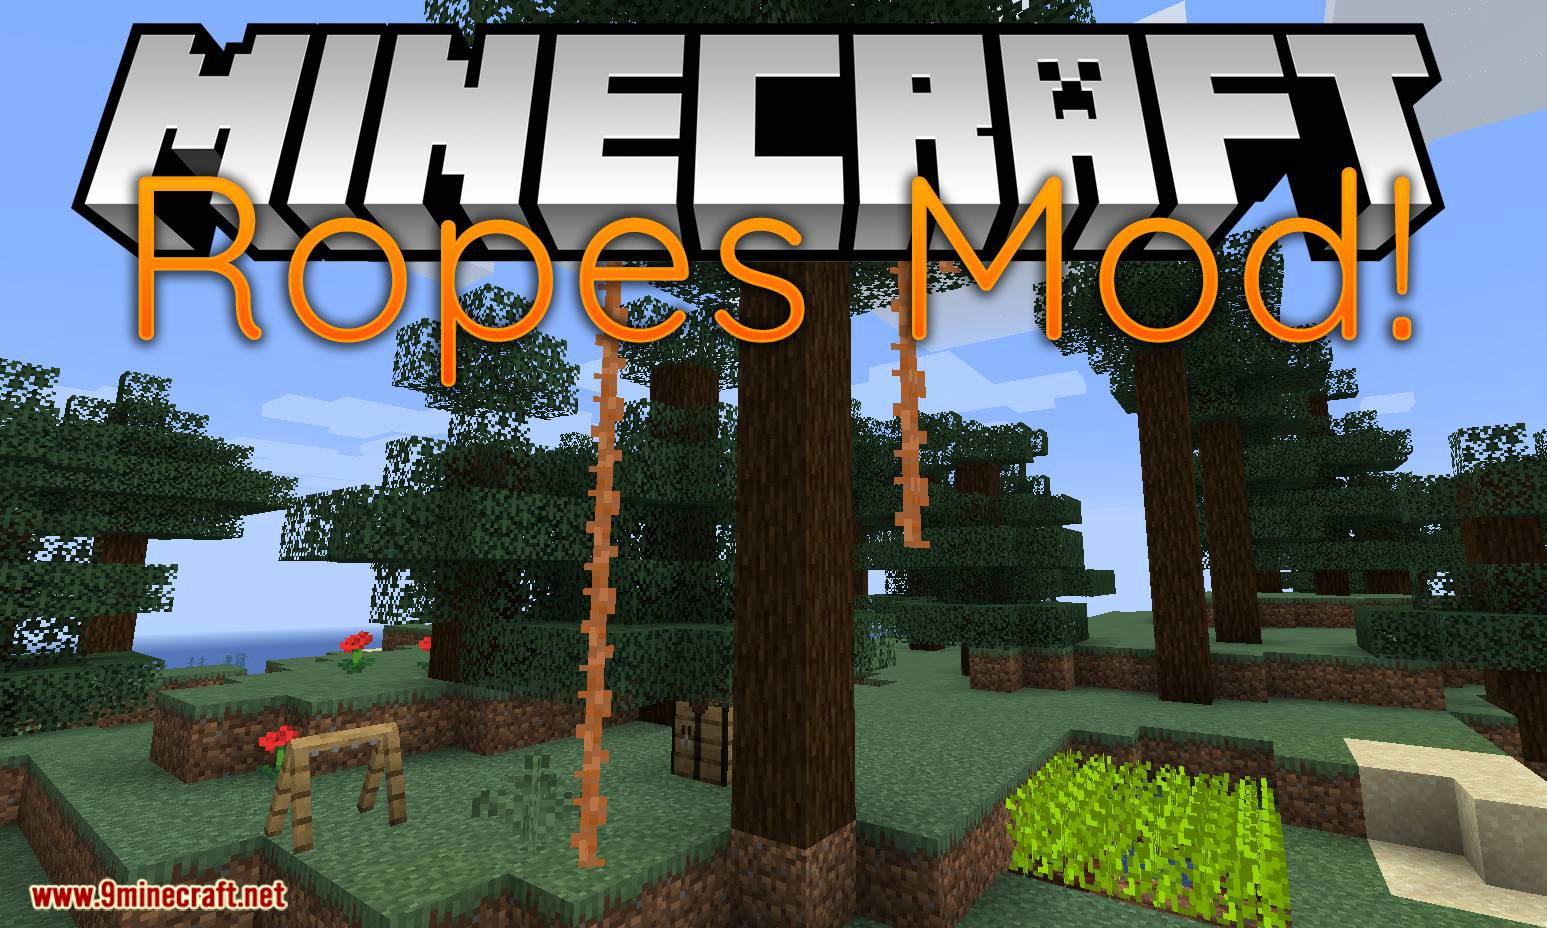 Ropes Mod for minecraft logo